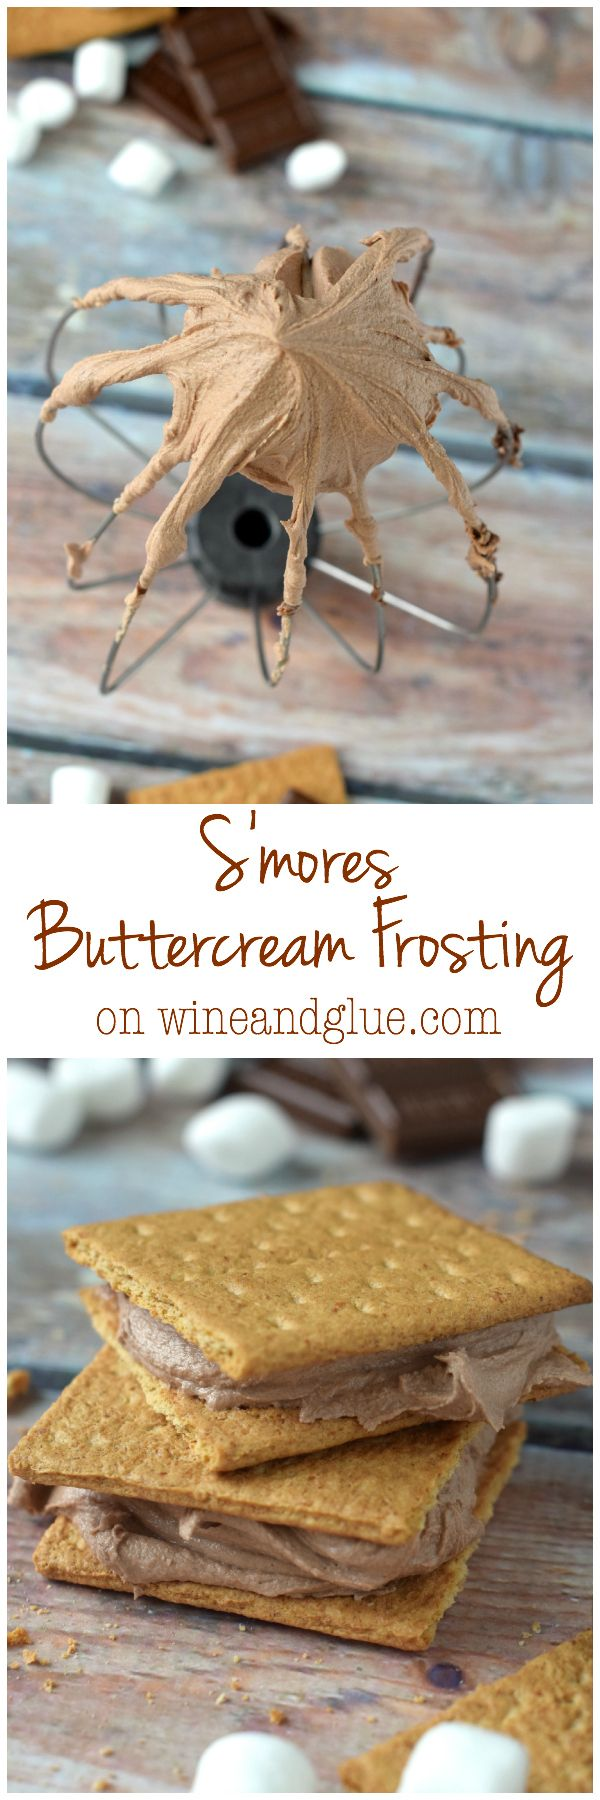 S'mores Buttercream Frosting | Delicious frosting that tastes like an ooey gooey s'mores